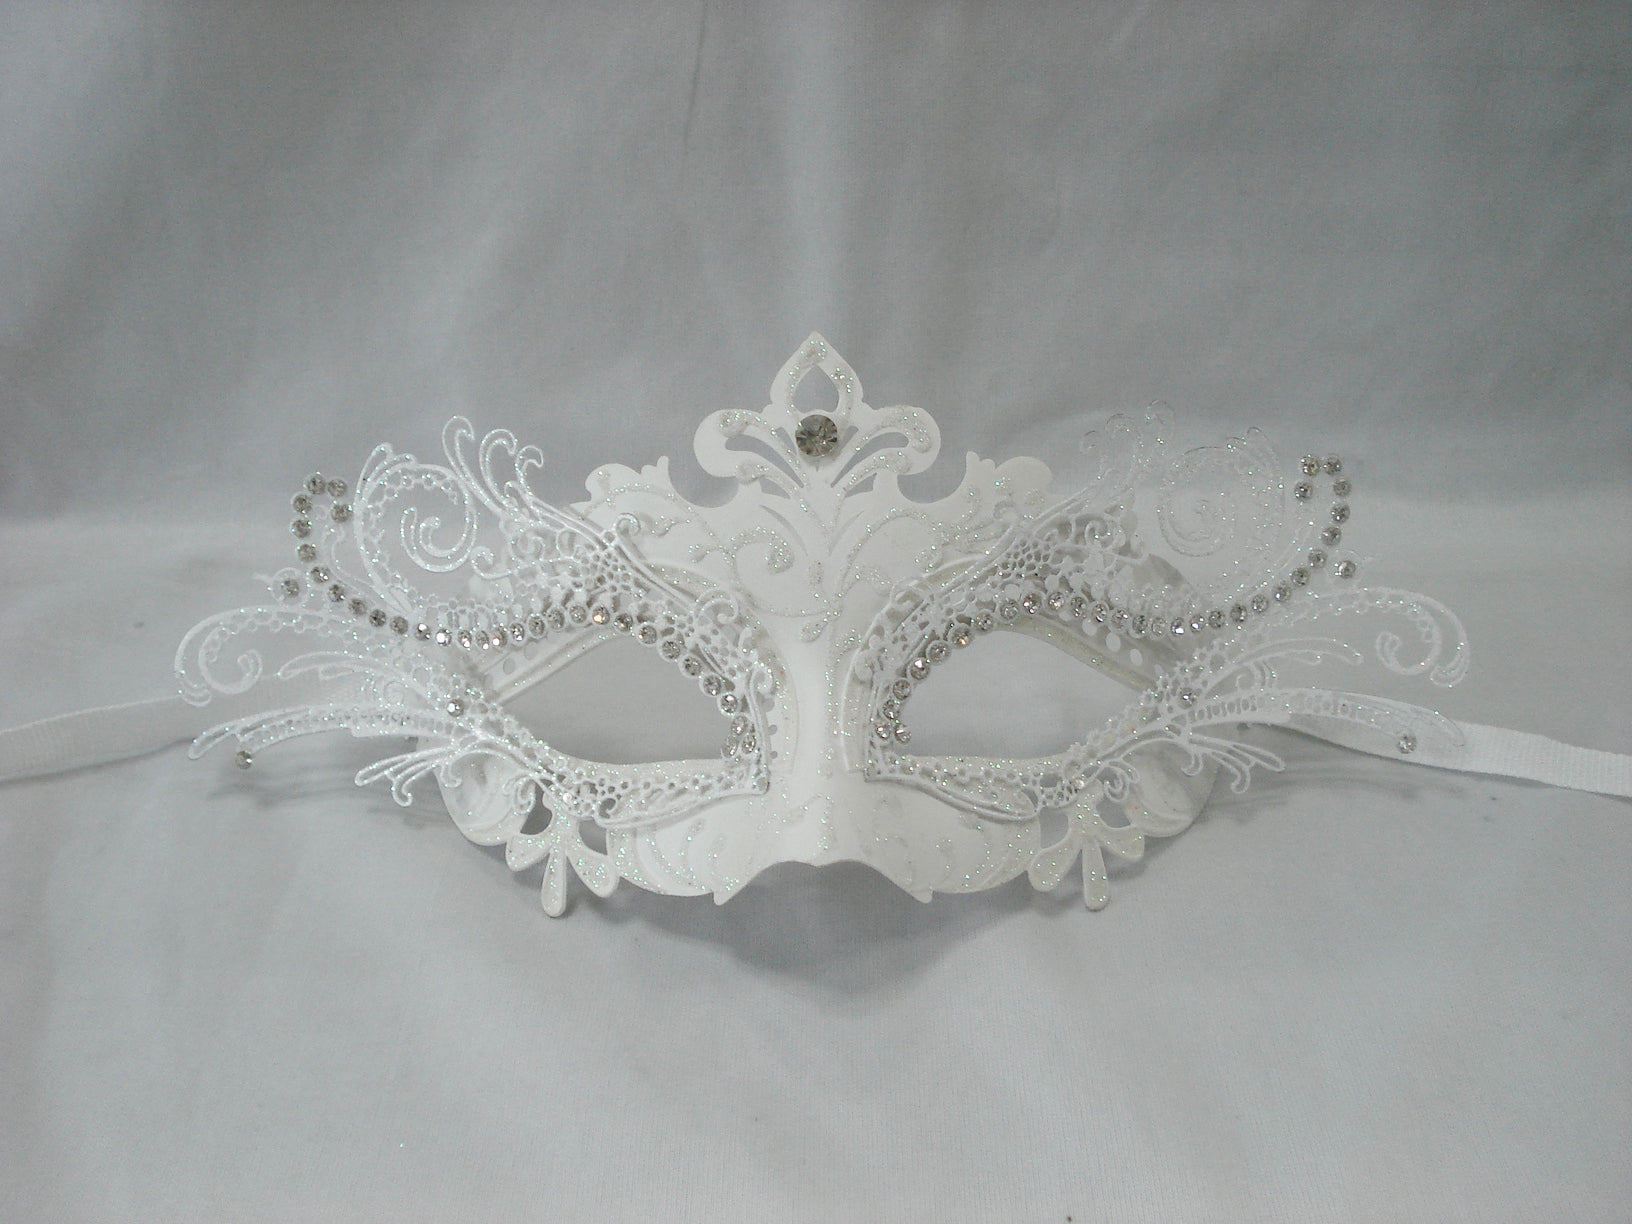 MK115 - White Deco Mask . TAMARR SALE ALL MASKS 50% OFF